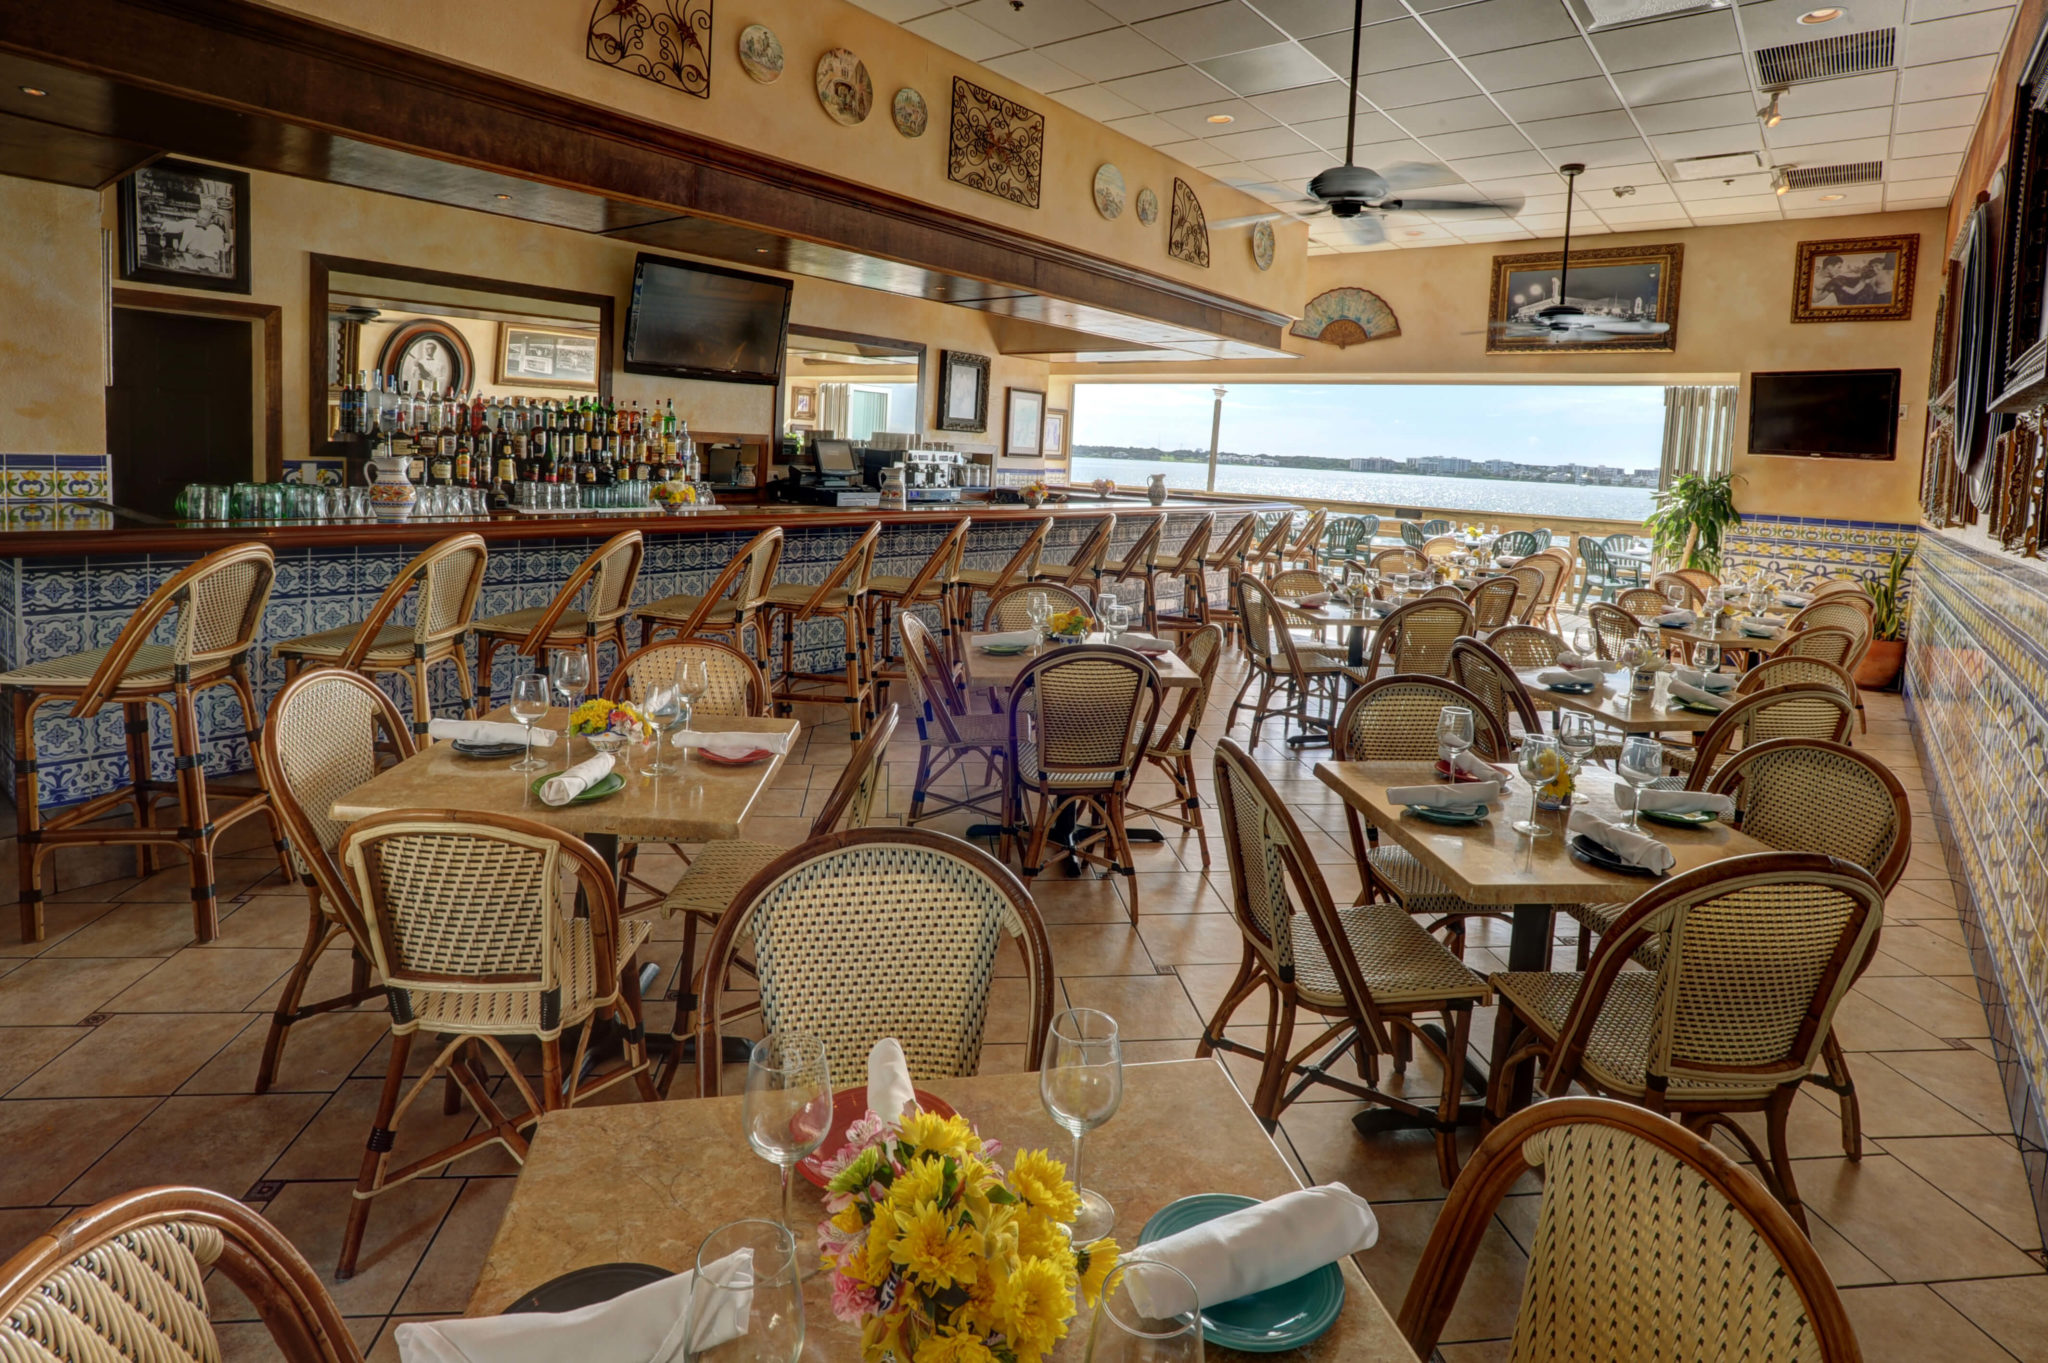 Wedding Reception, Restaurant Reception, Reception Planning, Clearwater Beach Restaurants